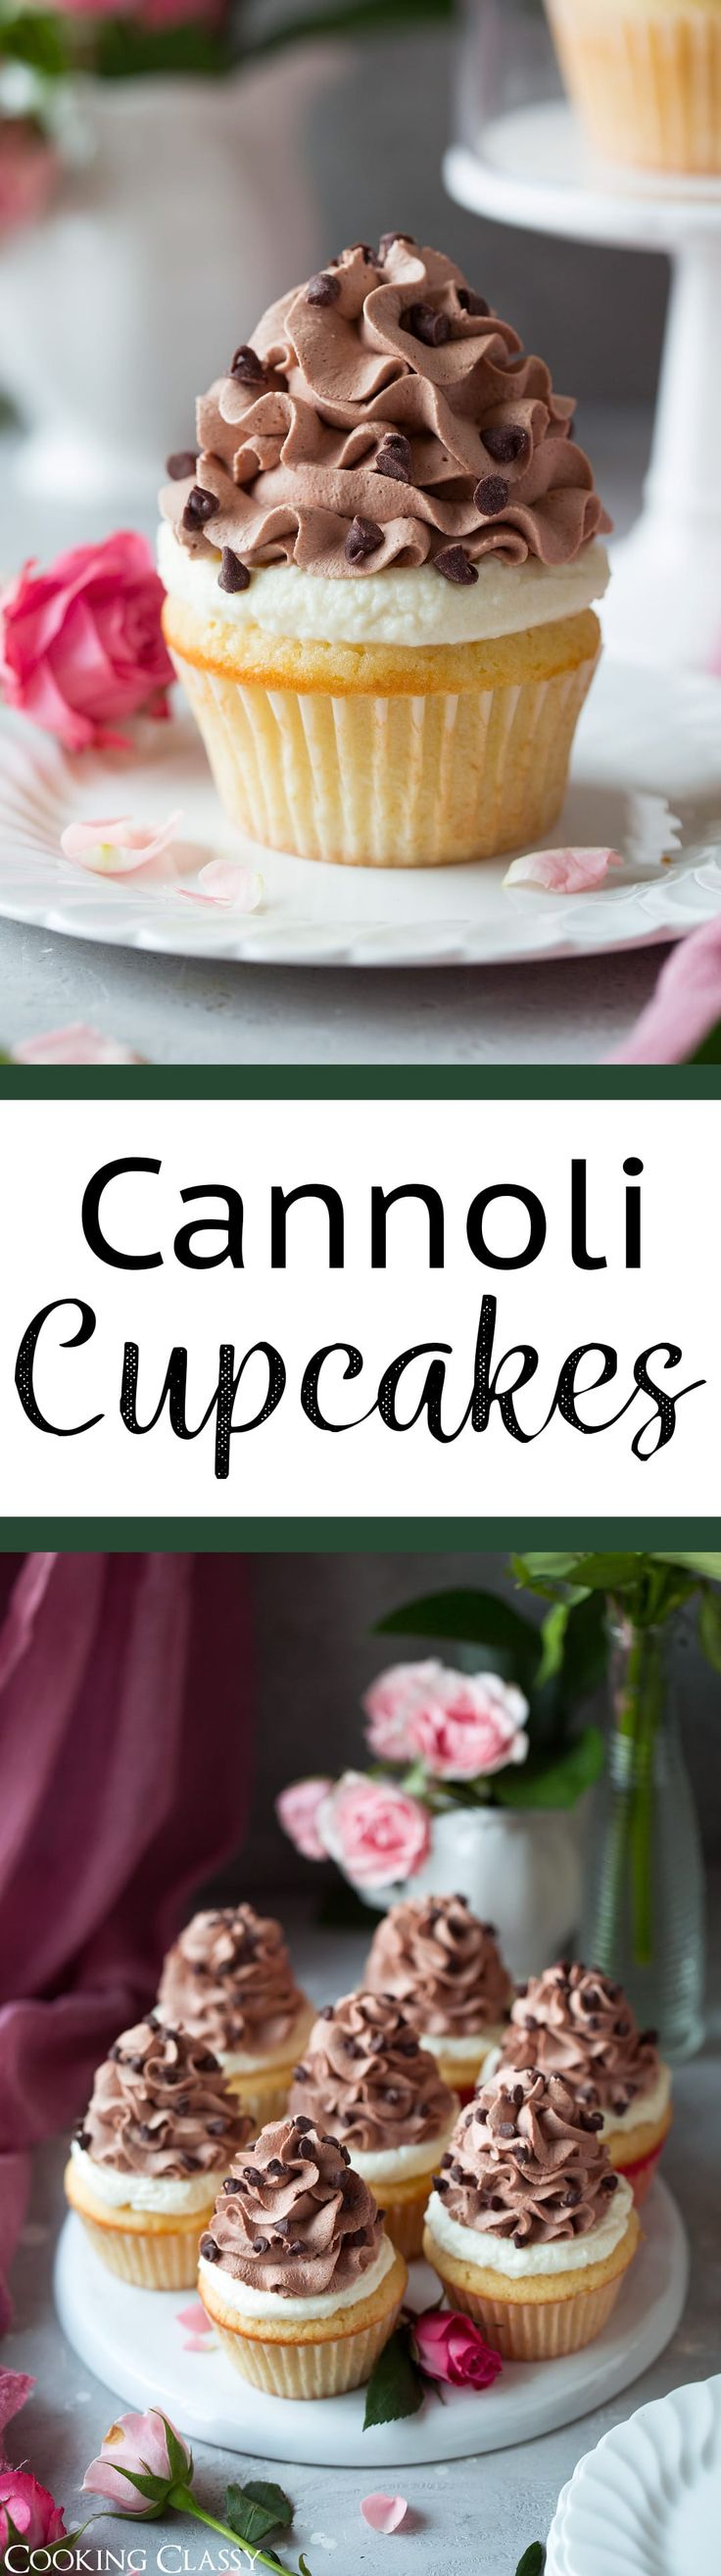 Cannoli Cupcakes - These are incredibly dreamy cupcakes! You get a soft and fluffy vanilla buttermilk cupcake topped with a rich cannoli filling and it's finished with a silky smooth chocolate whipped cream. Perfect for any celebration, or just to bake up for fun because life needs cupcakes sometimes. via @cookingclassy